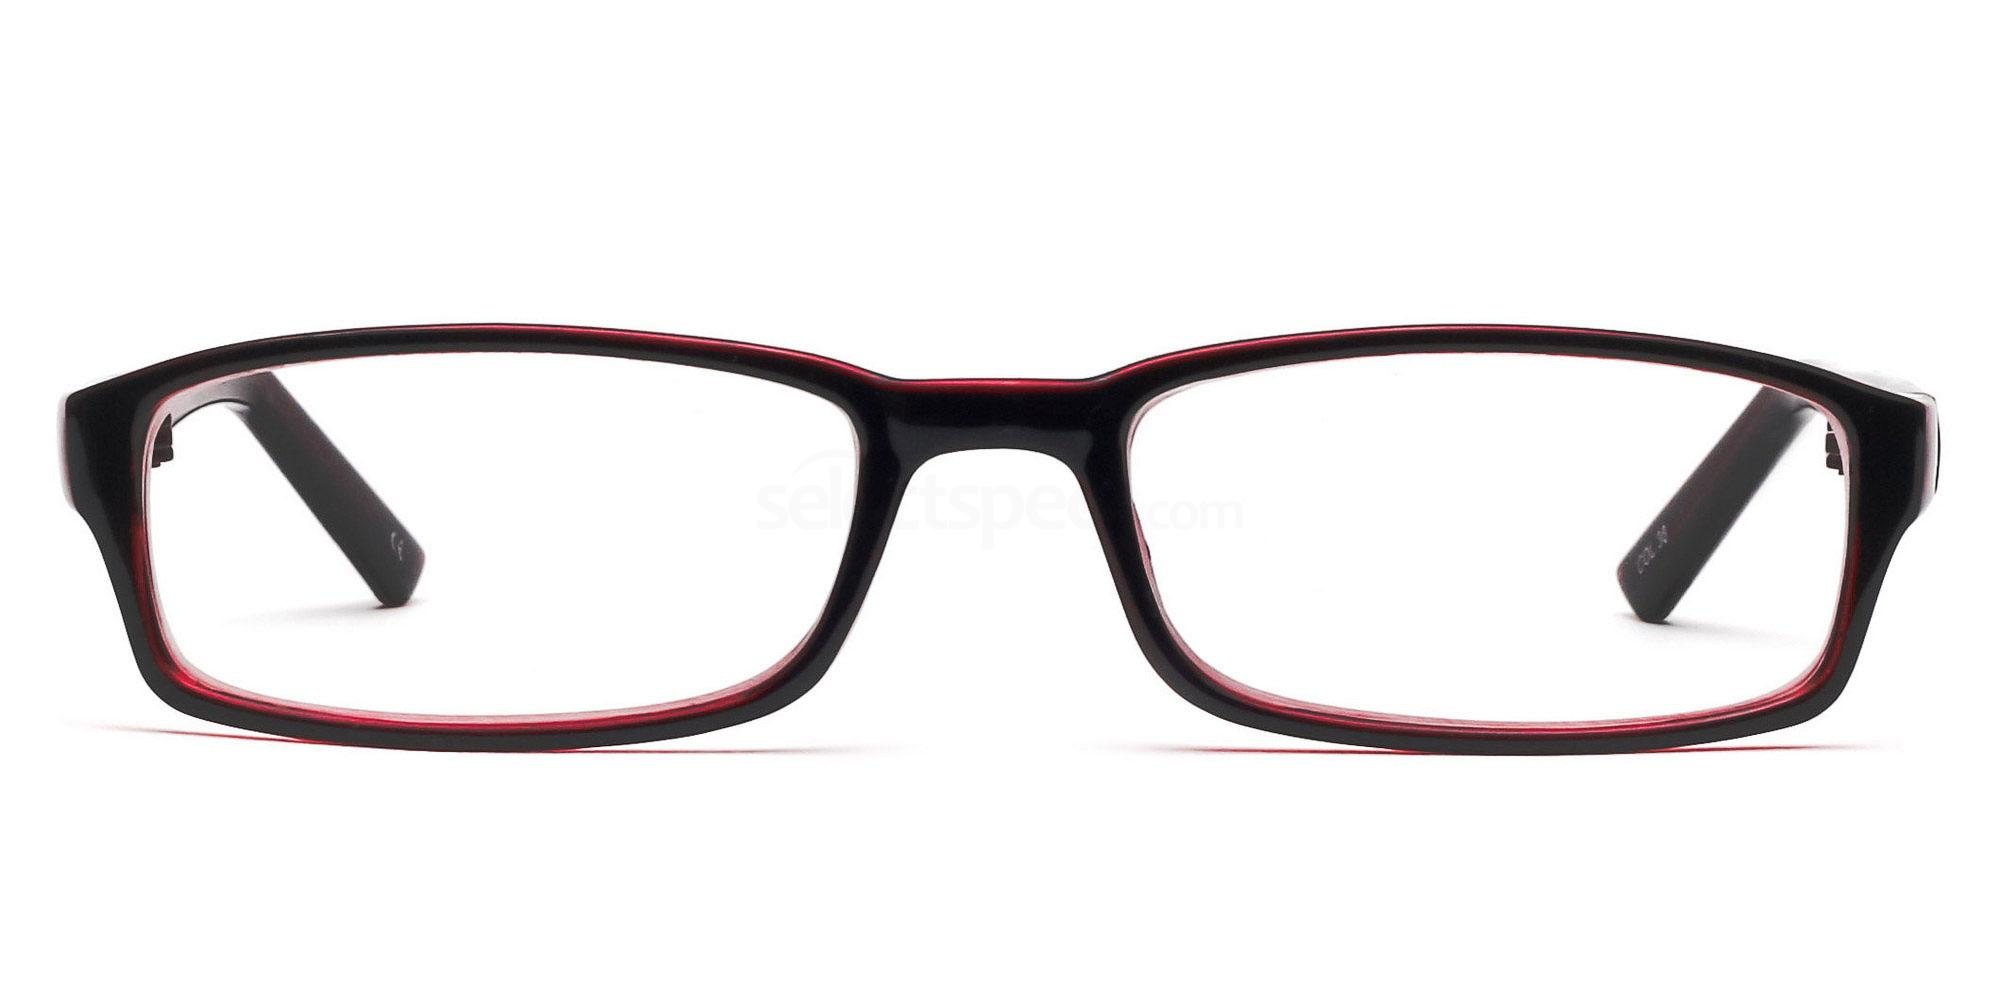 COL.38 2264 - Black and Red Glasses, Savannah